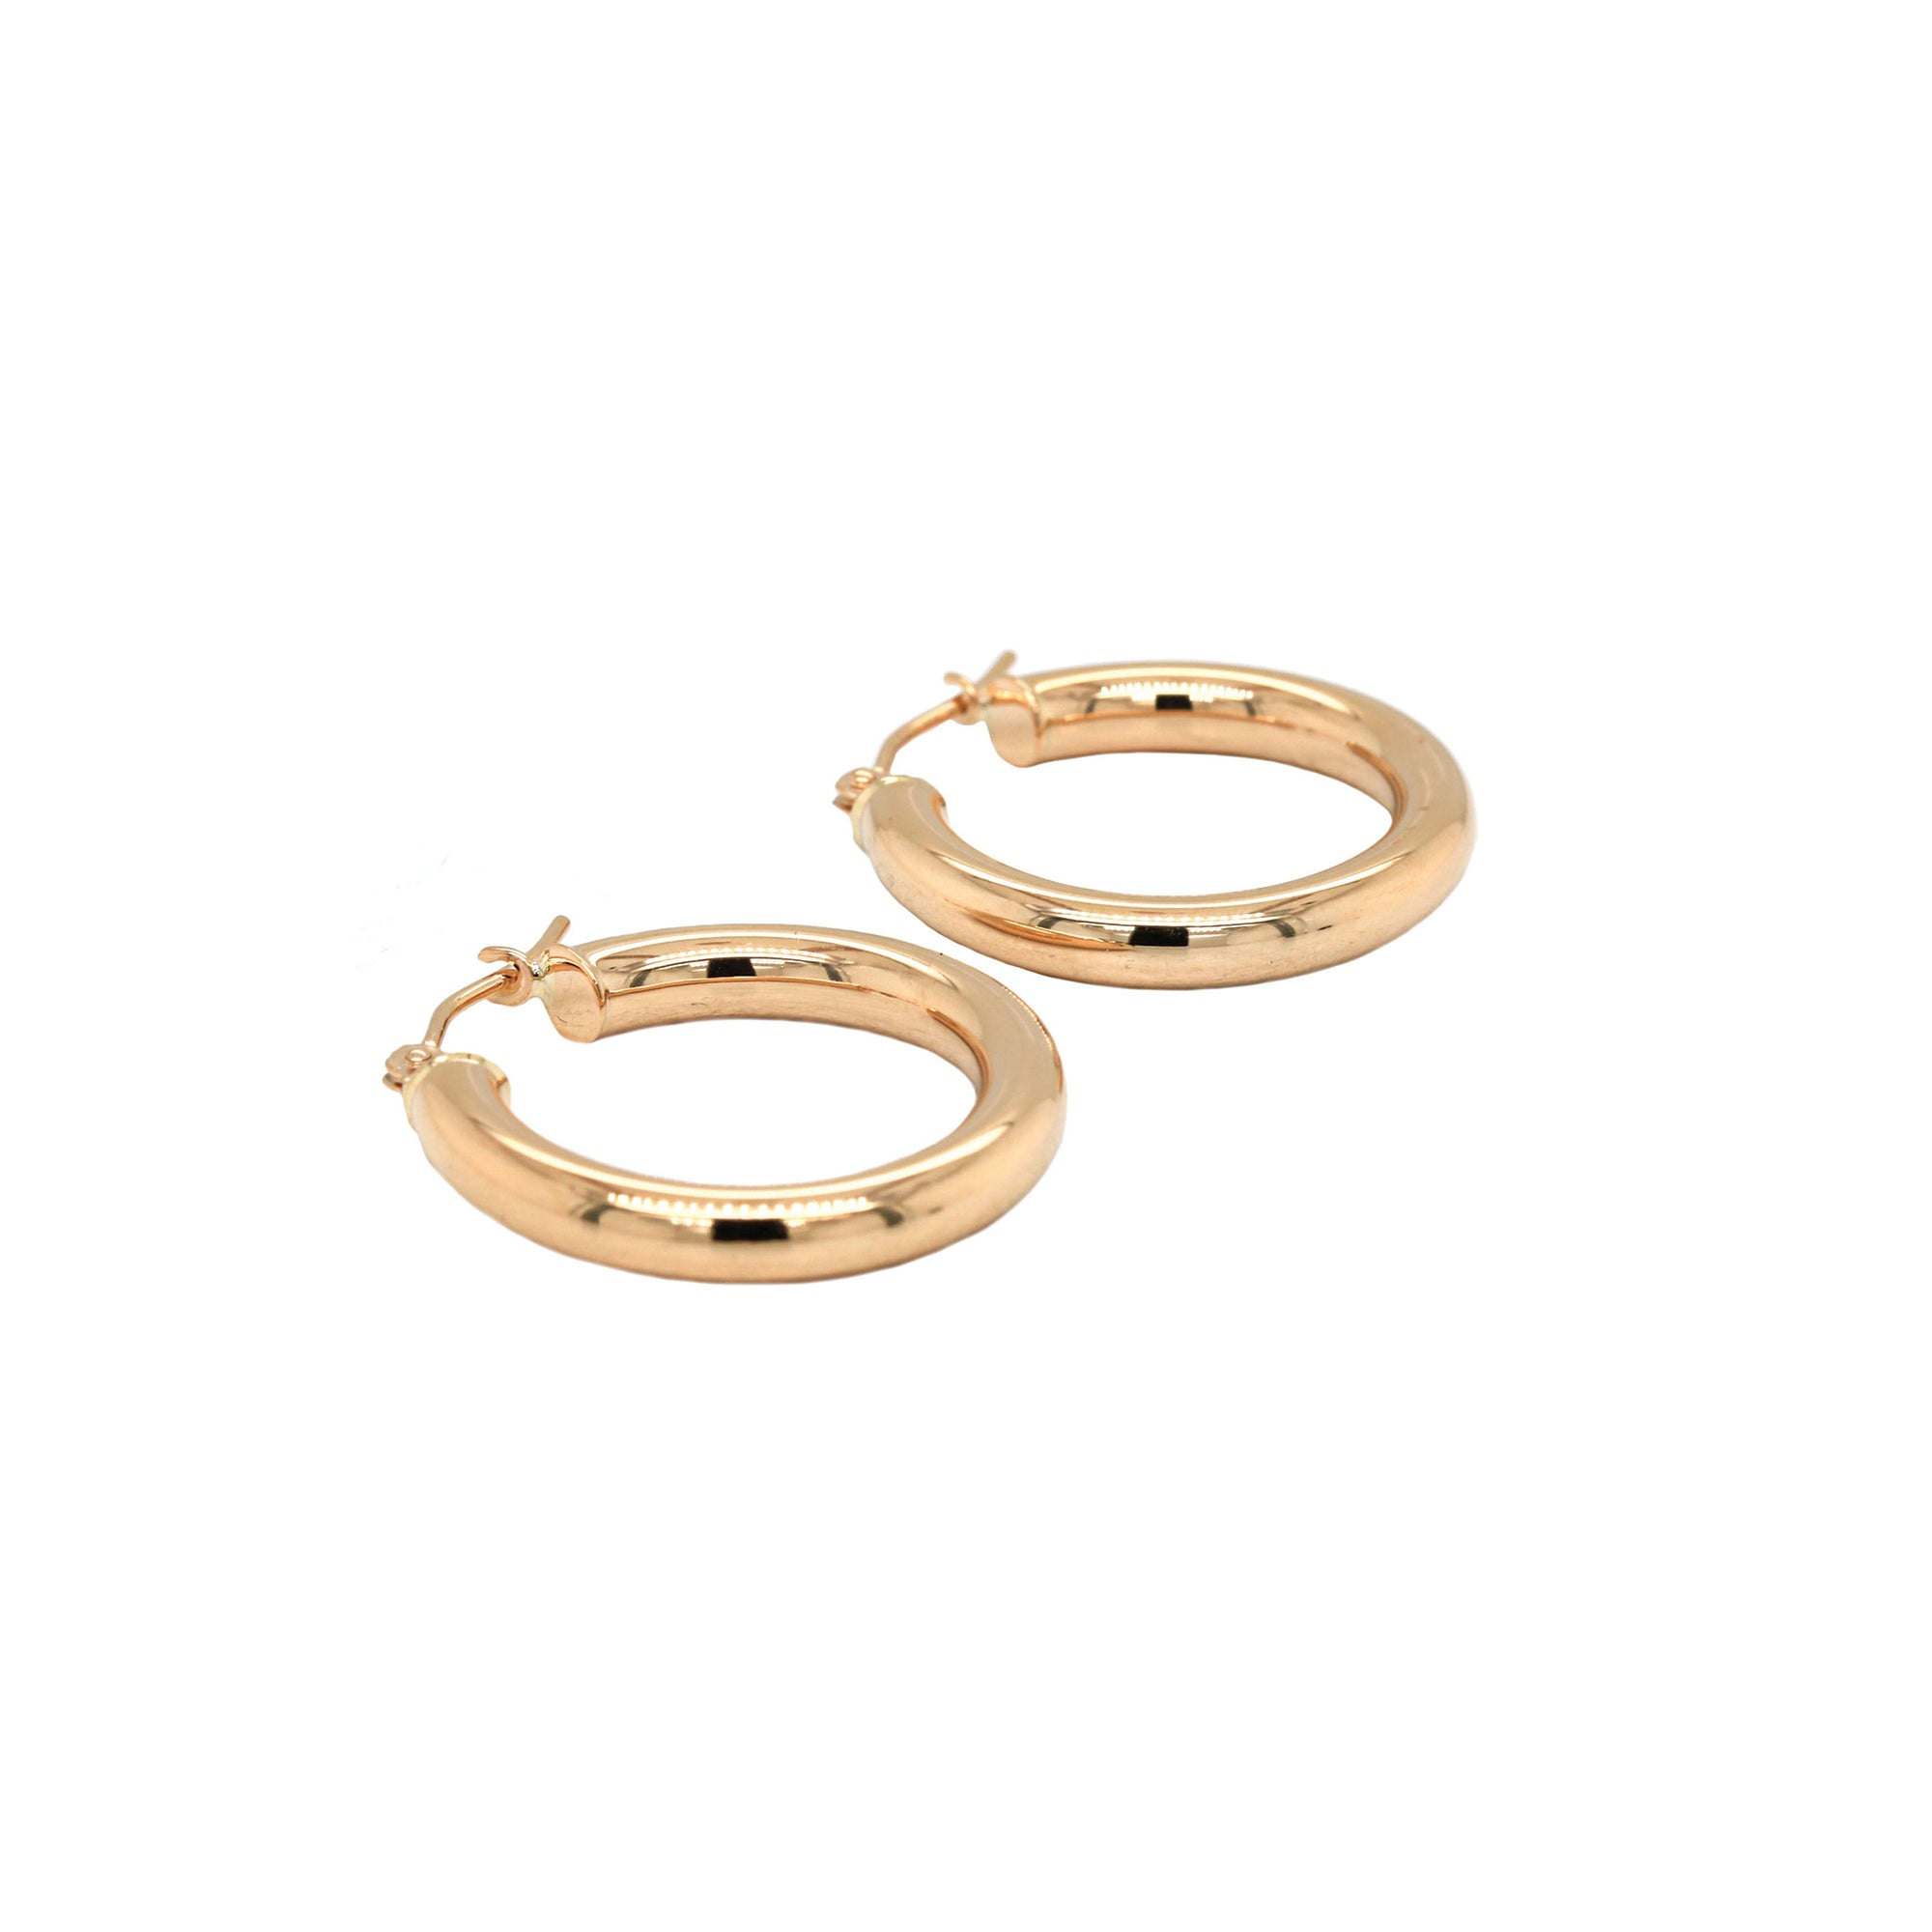 20mm 14K Gold Hoop Earrings